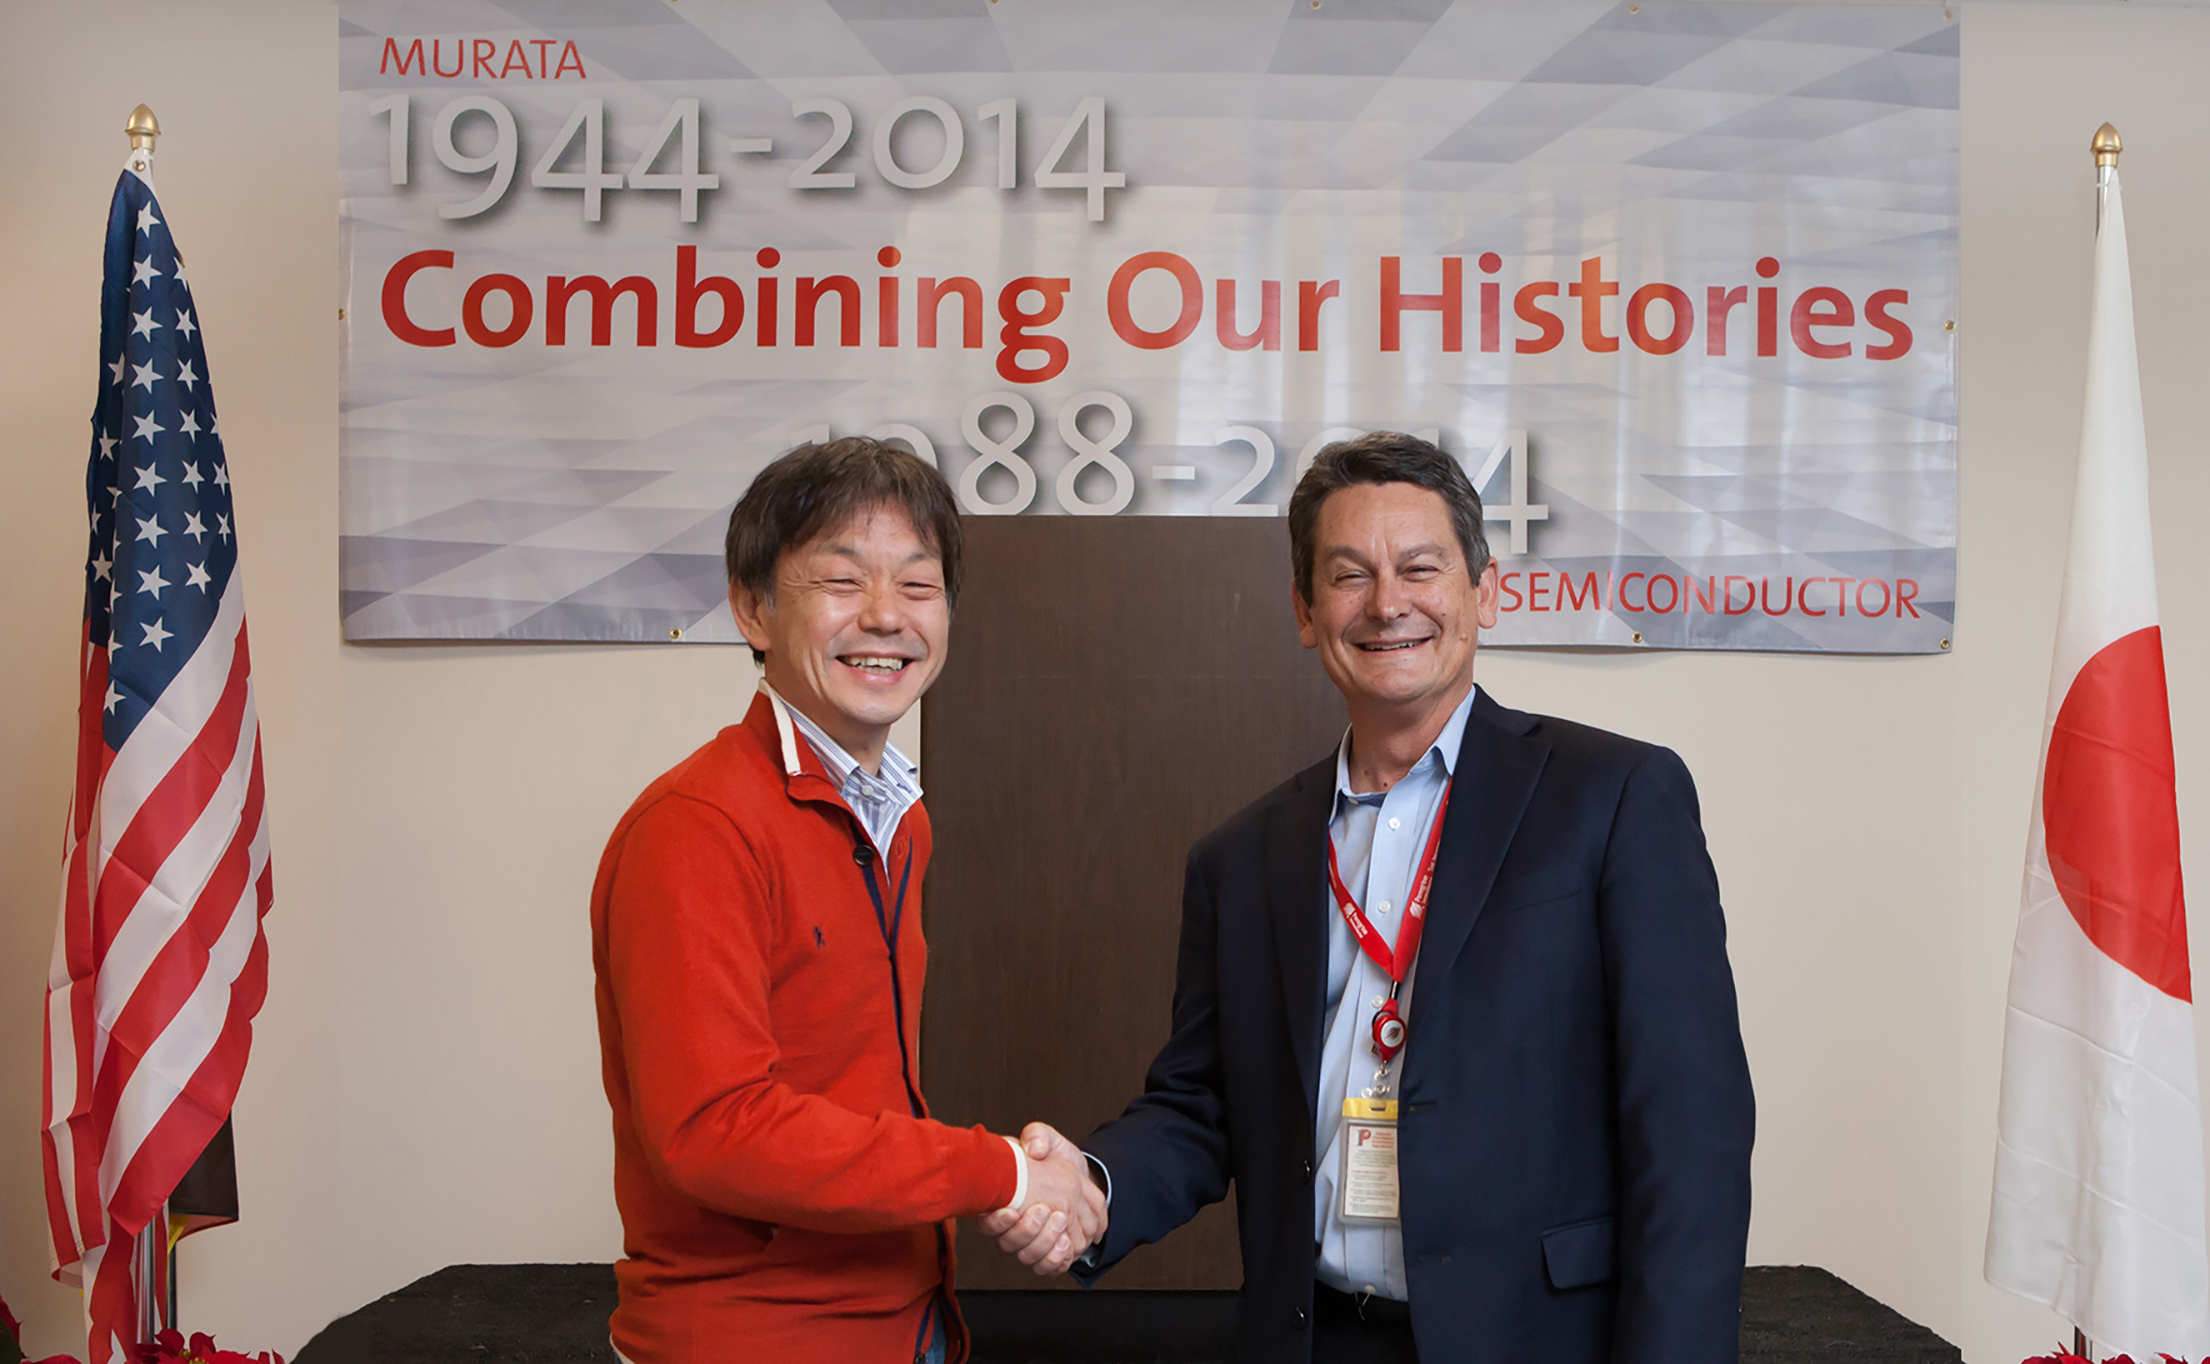 Peregrine Semiconductor Hosts Ceremony After Close of Murata